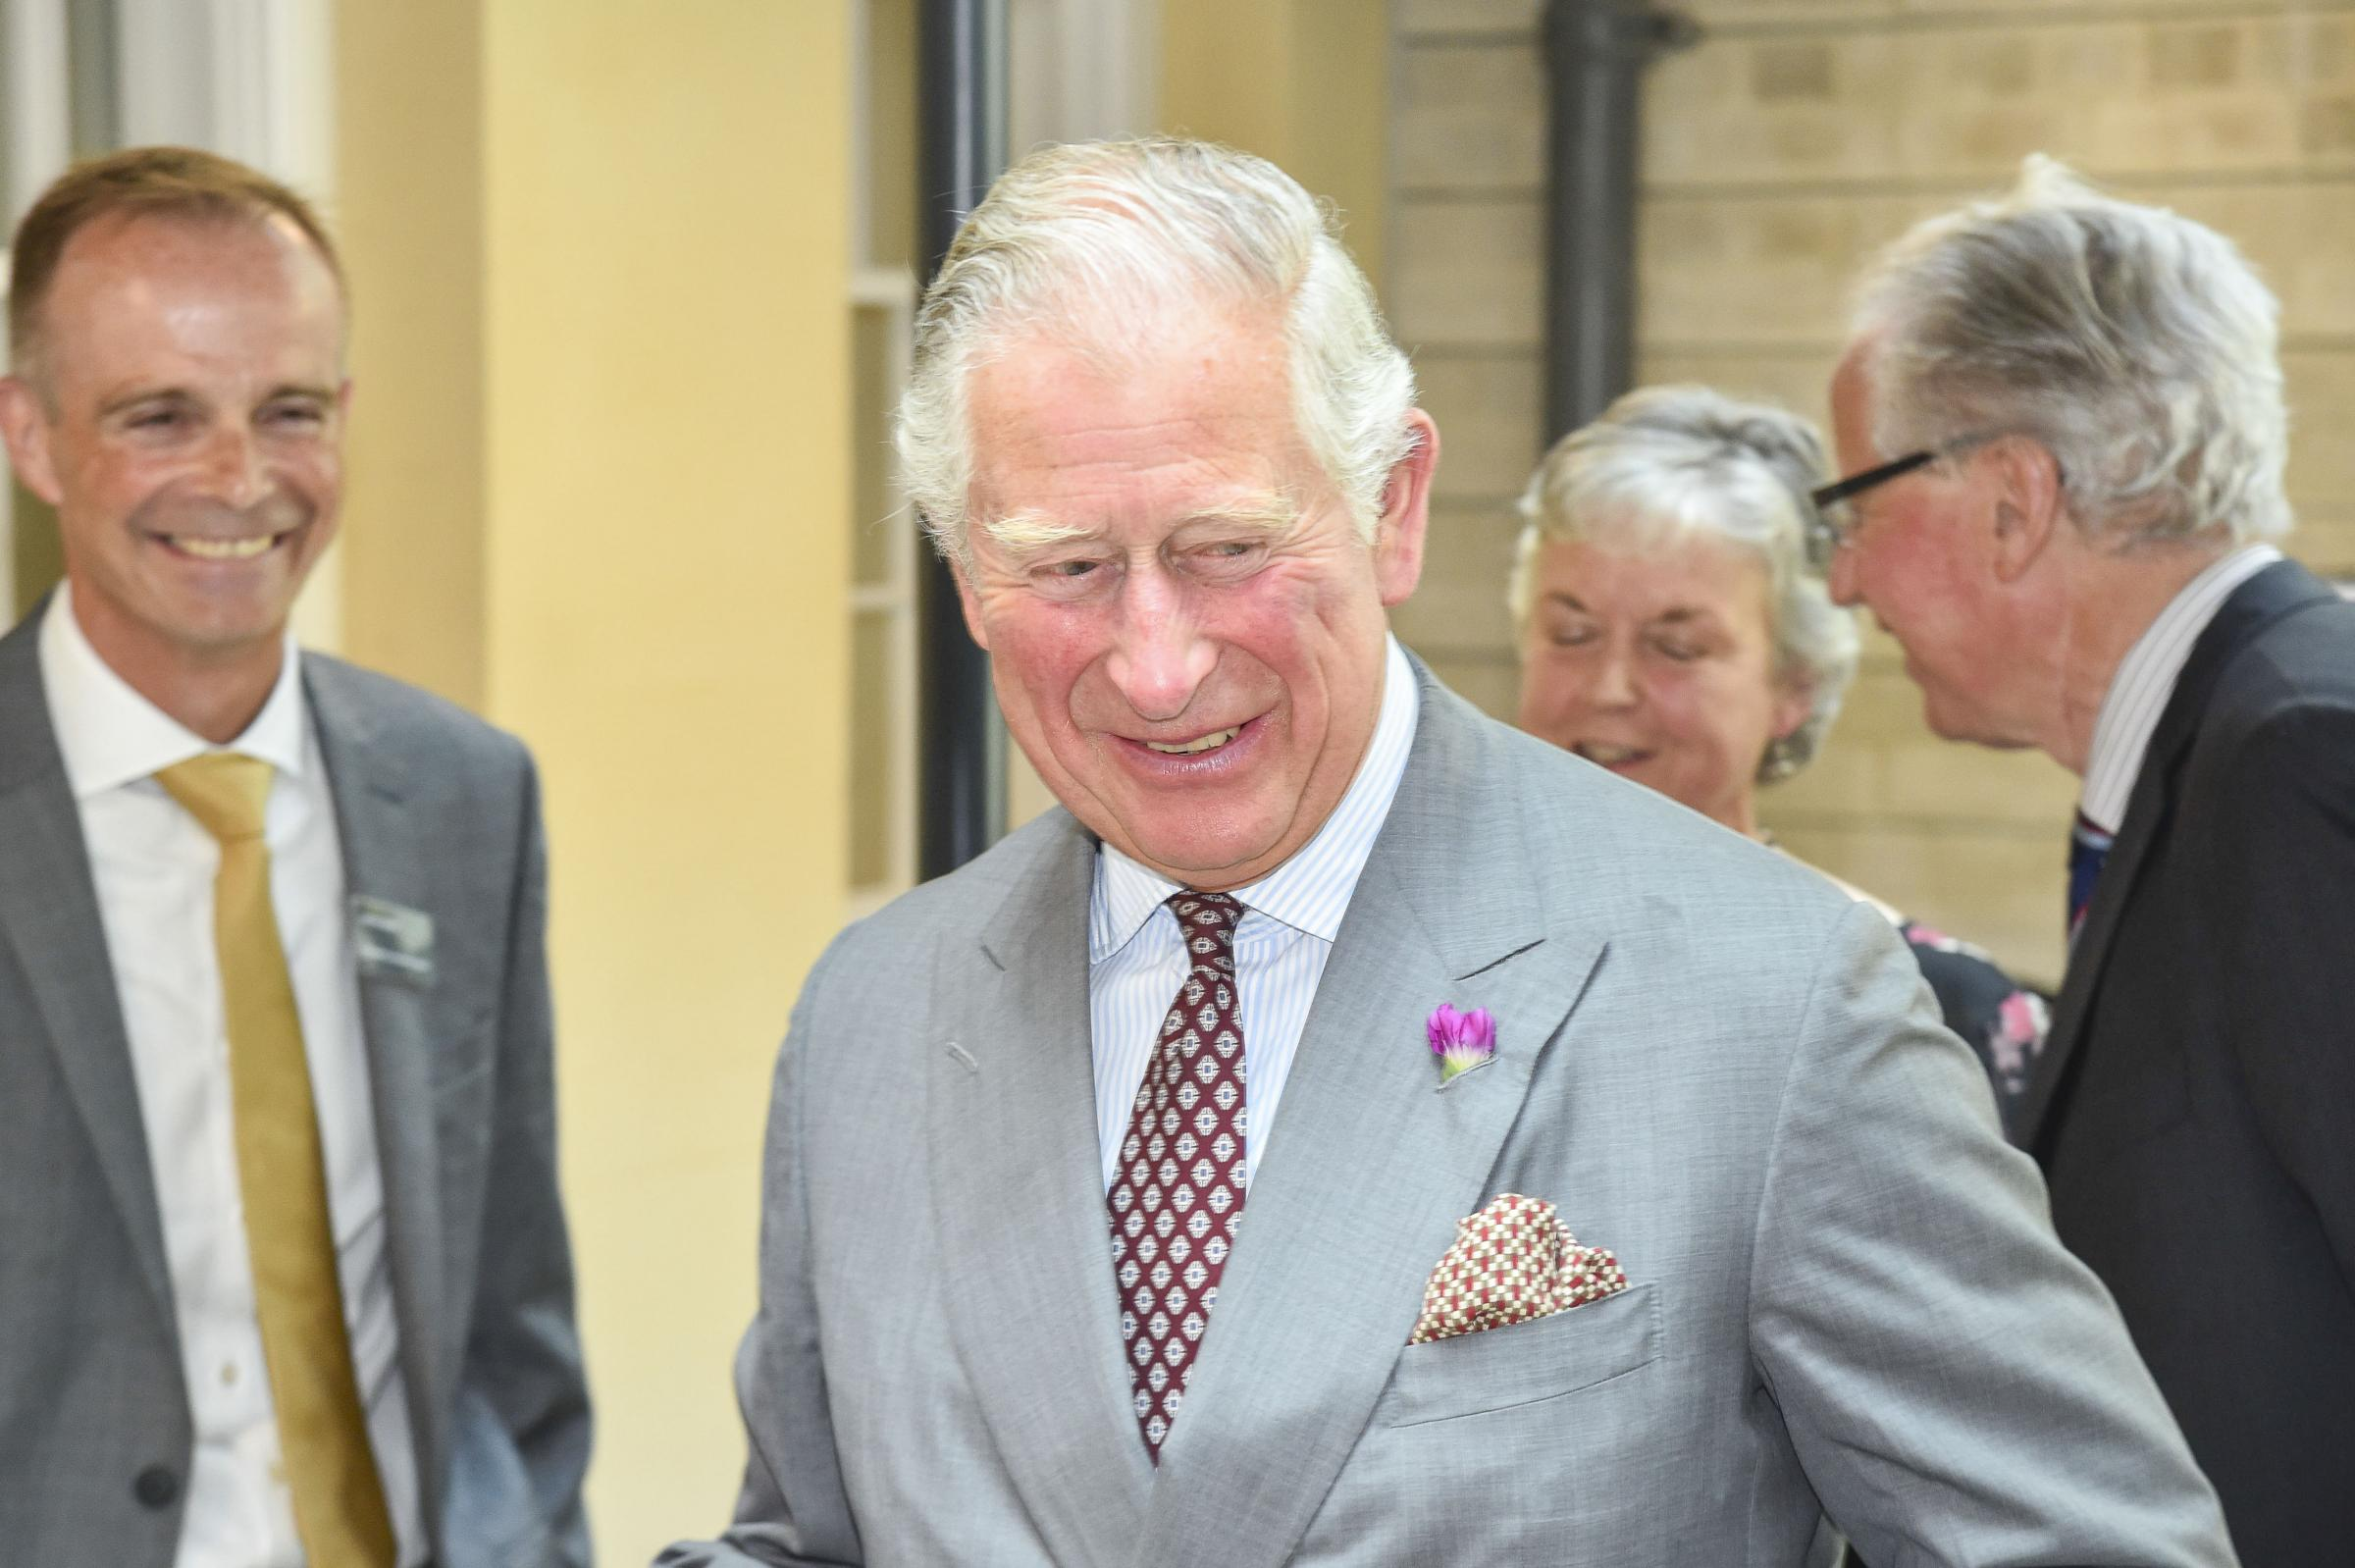 Prince Charles visited the LSI in Bridport